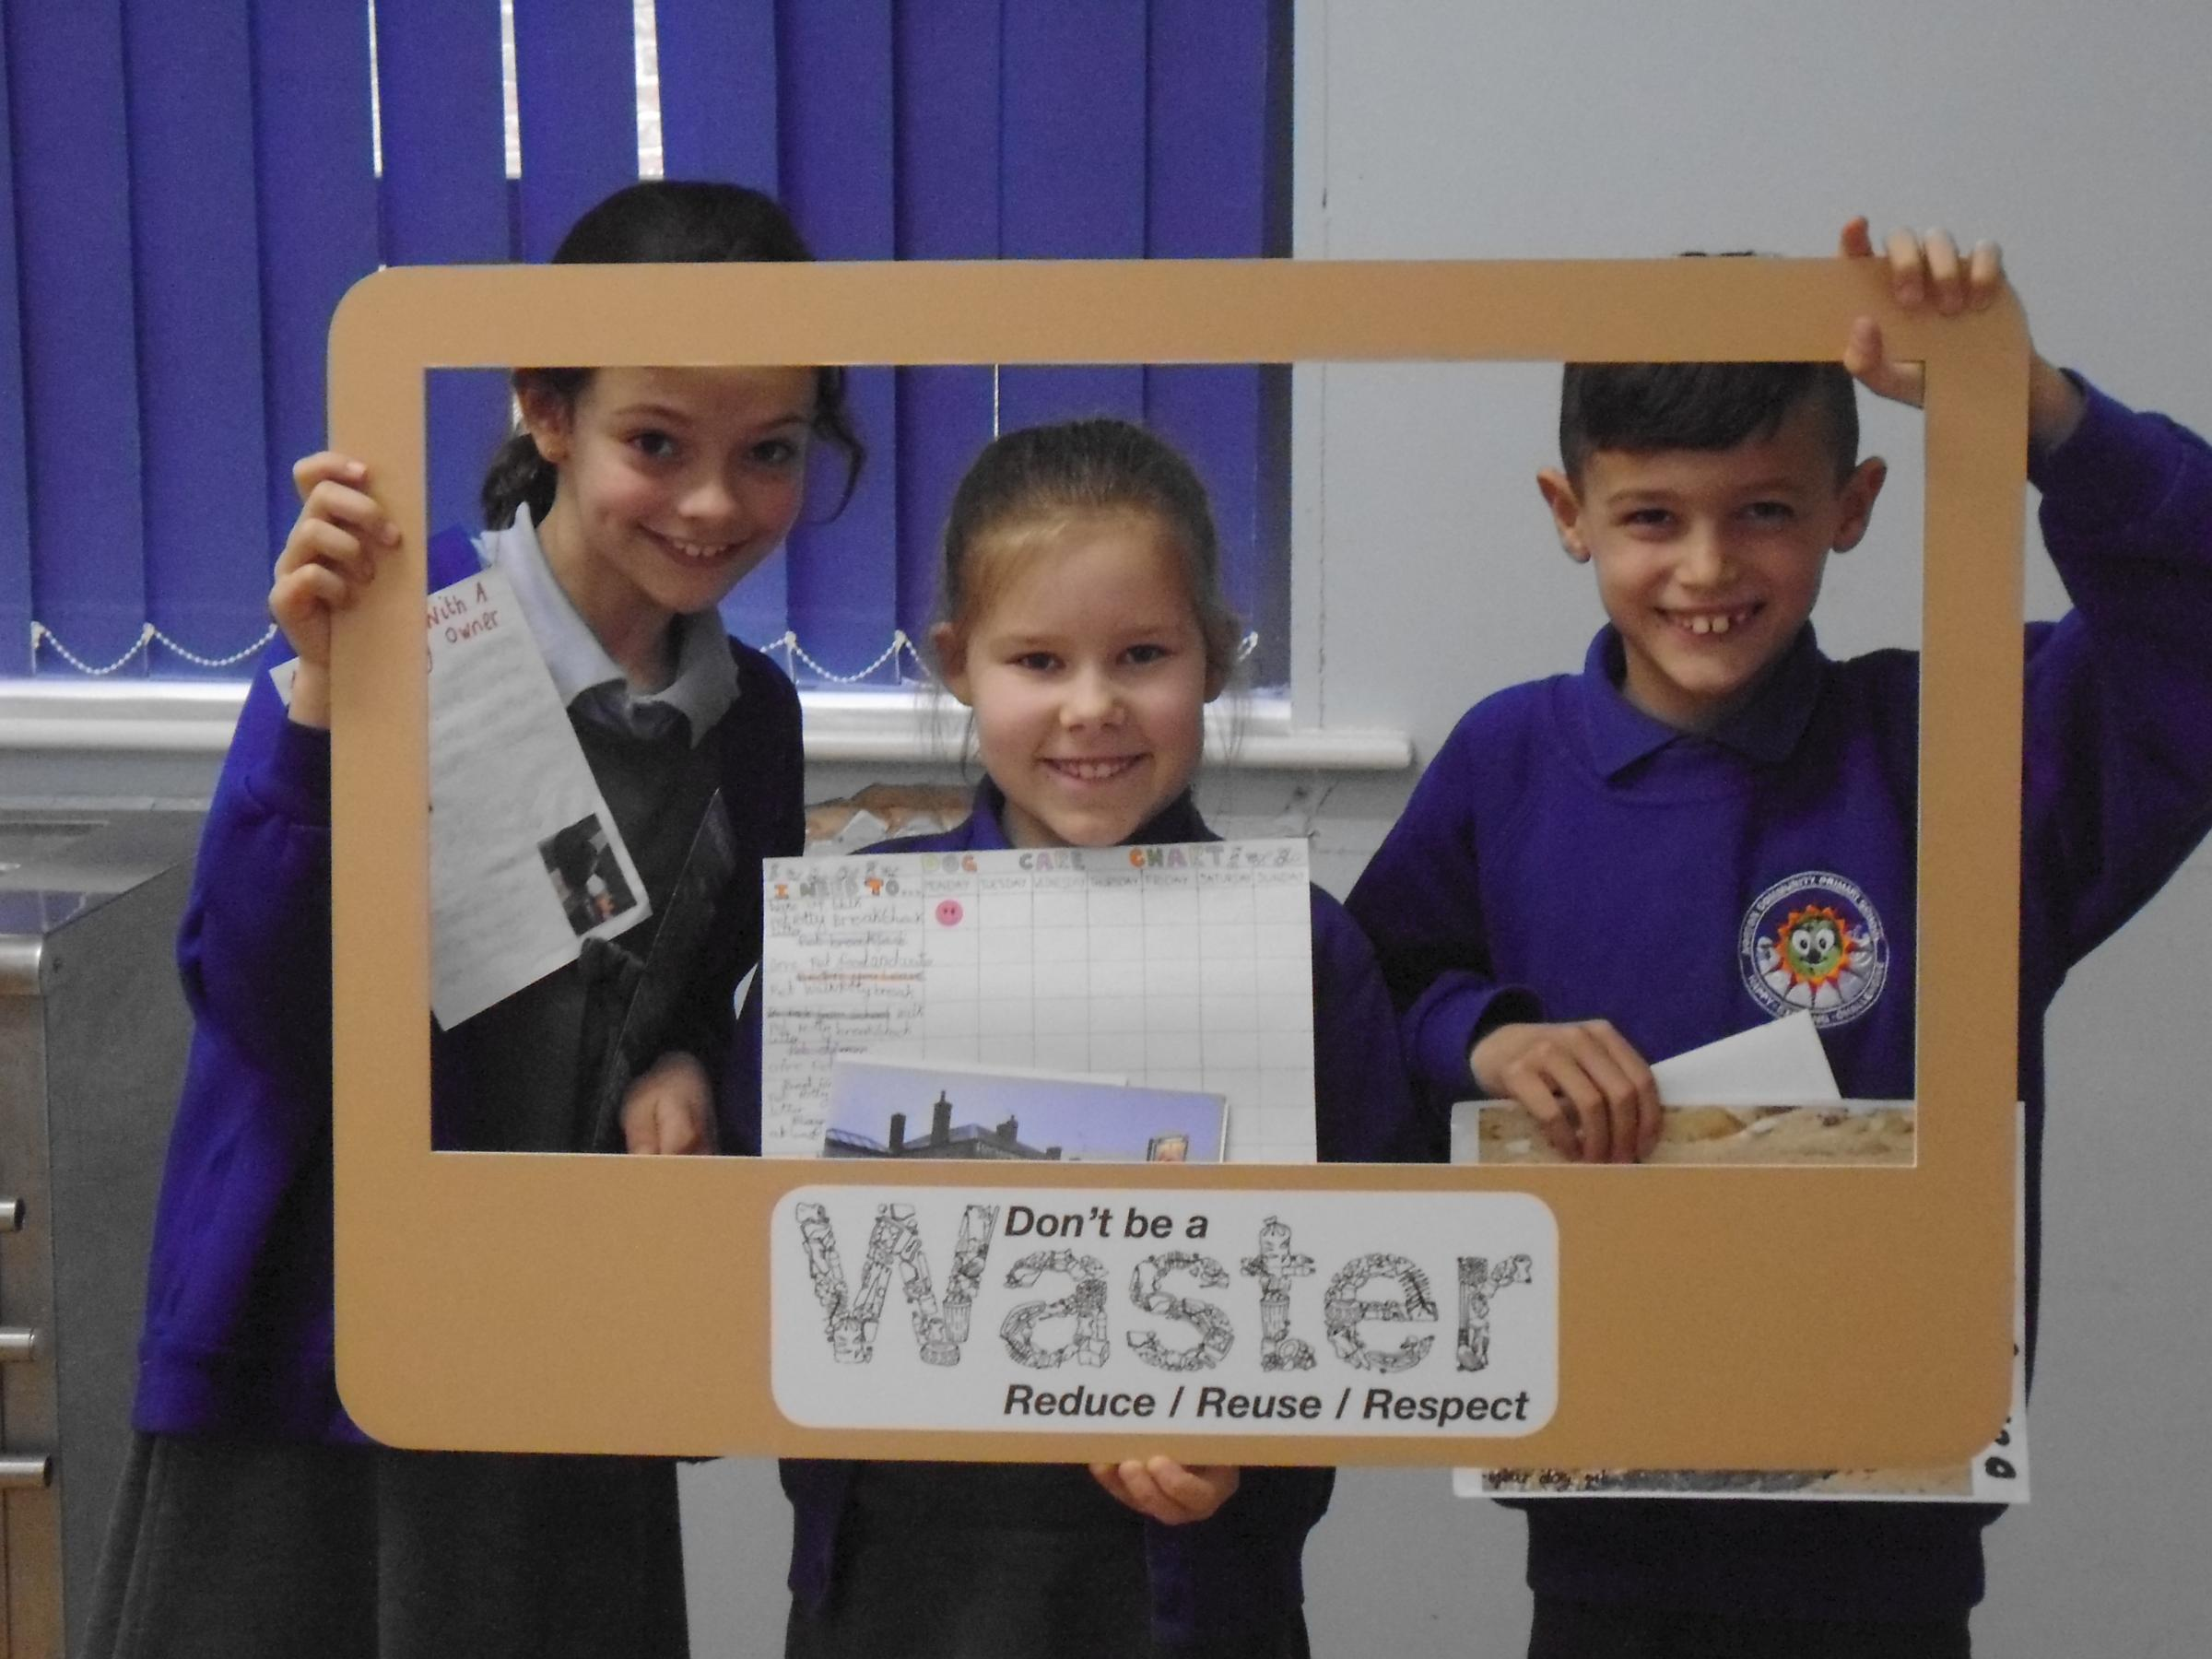 REDUCED WASTE: Young children praised for their efforts